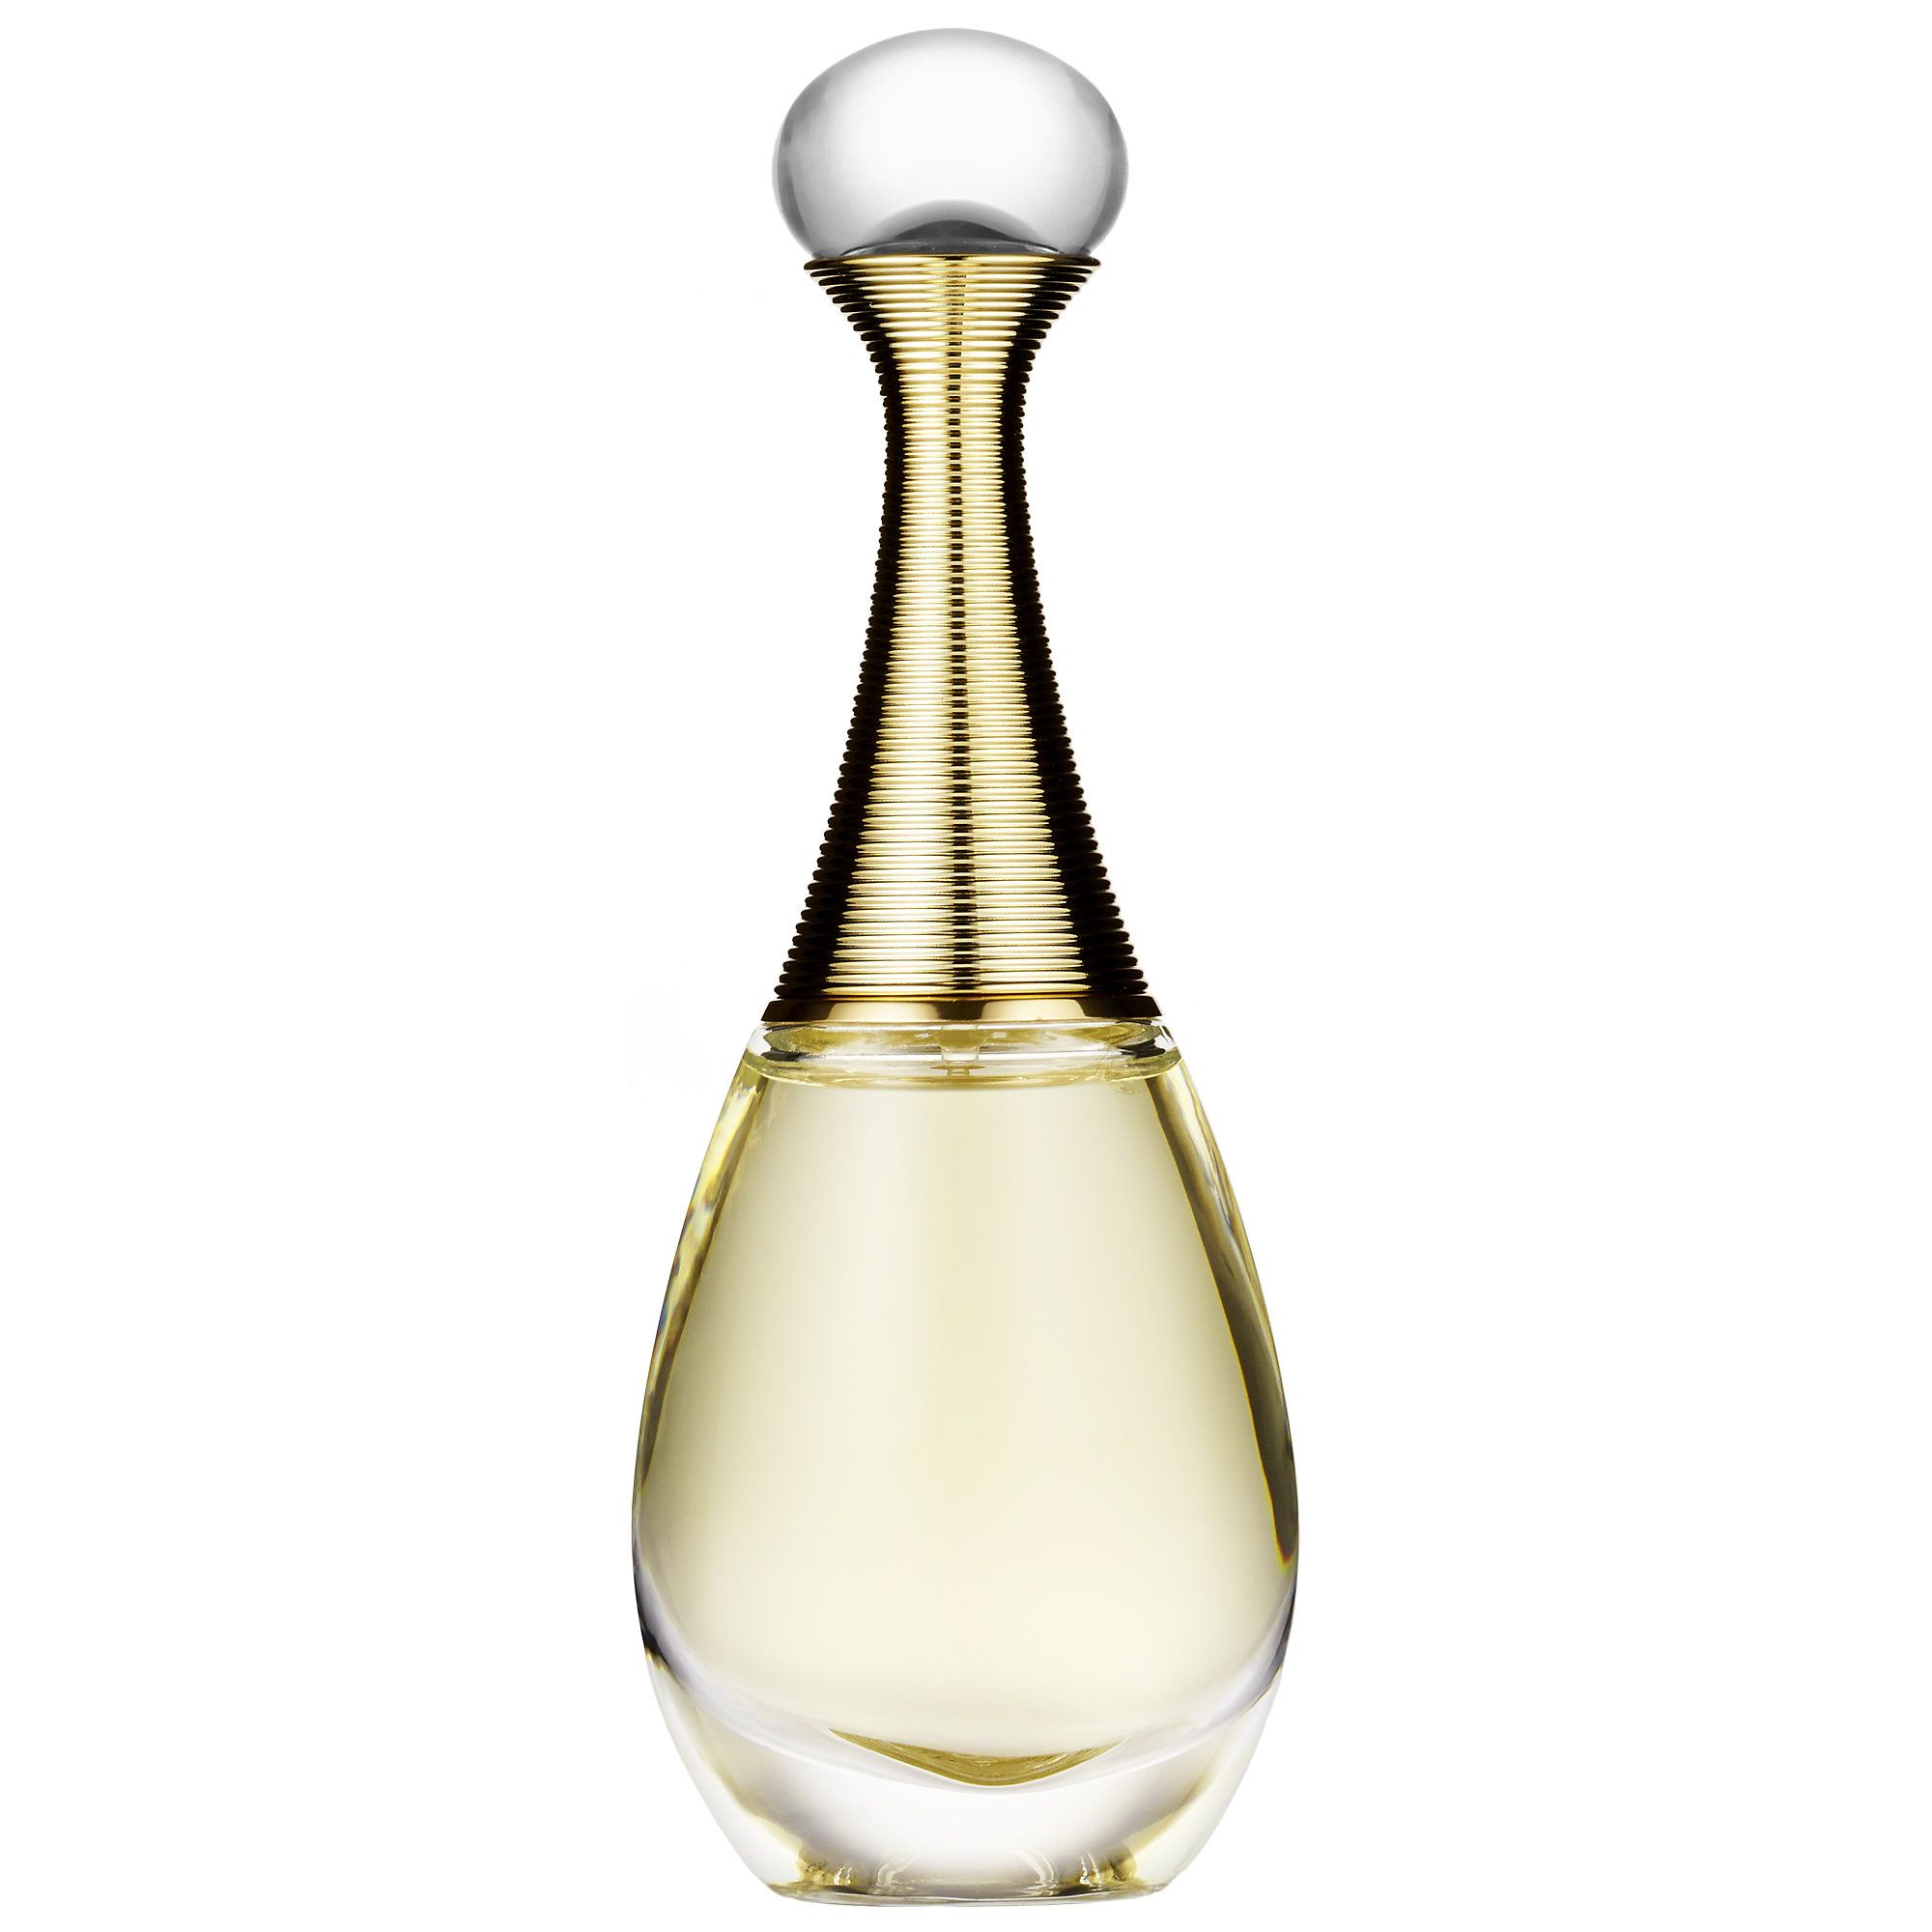 J'adore Eau de Parfum - Dior | Sephora Or gift card to Sephora to go toward the purchase since it is pricey